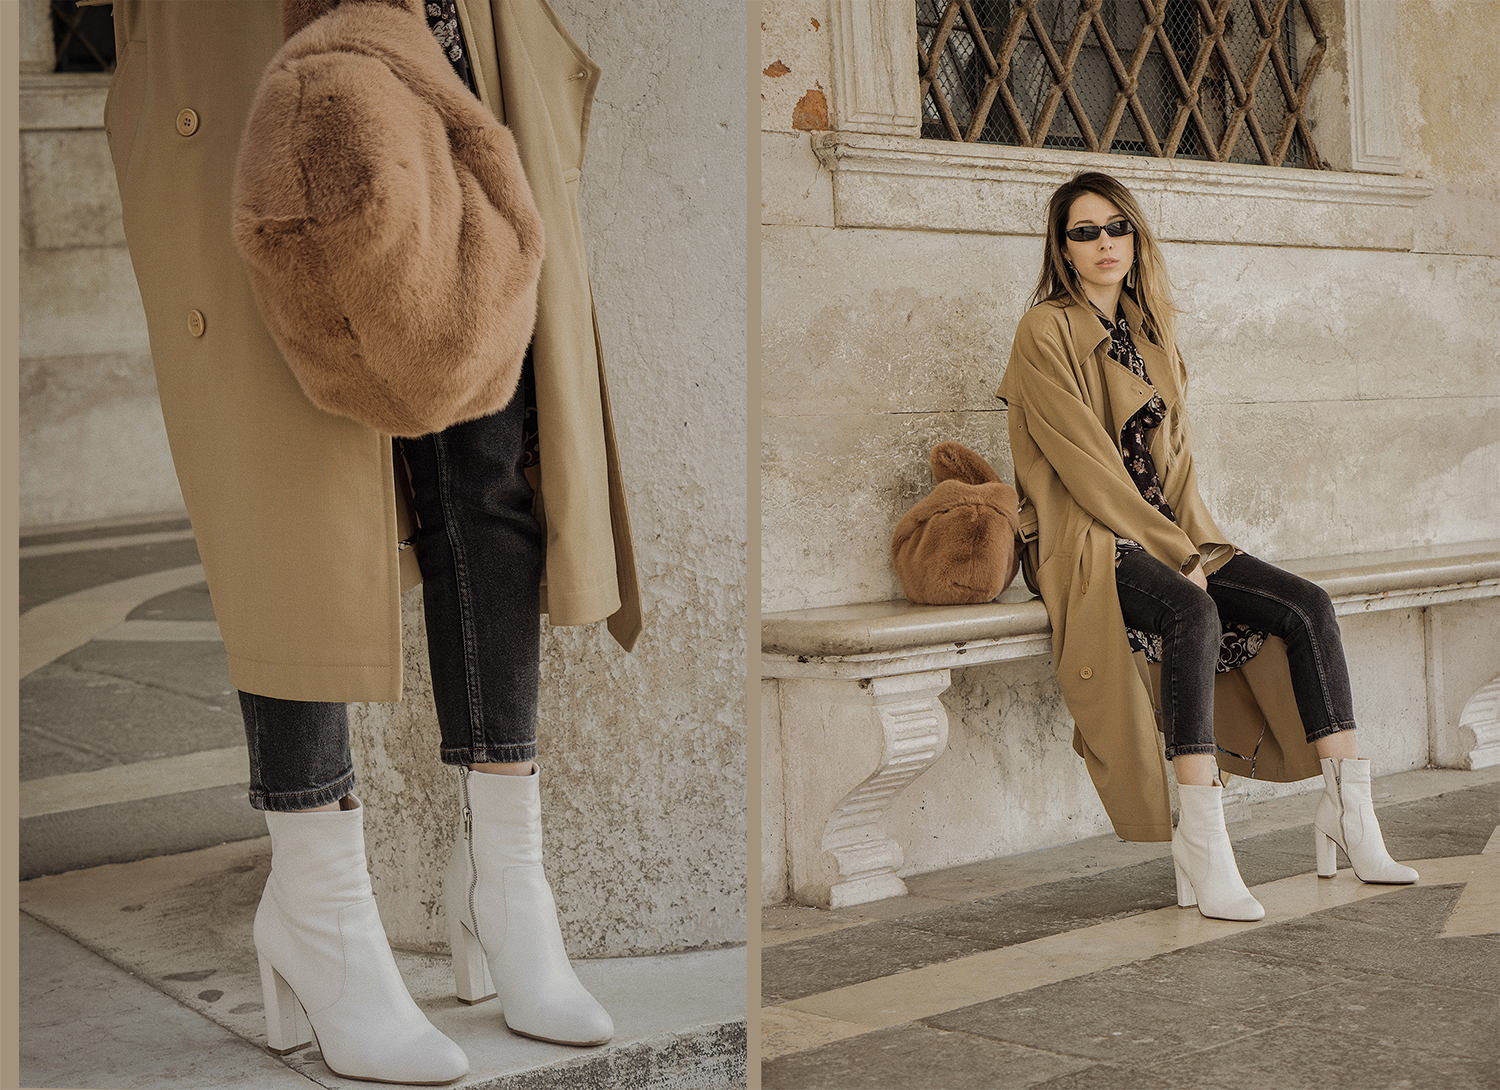 trench_coat_white_boots_dress_with_jeans_venice_italy_fur_bag_fashion_lenajuice_thewhiteocean_08